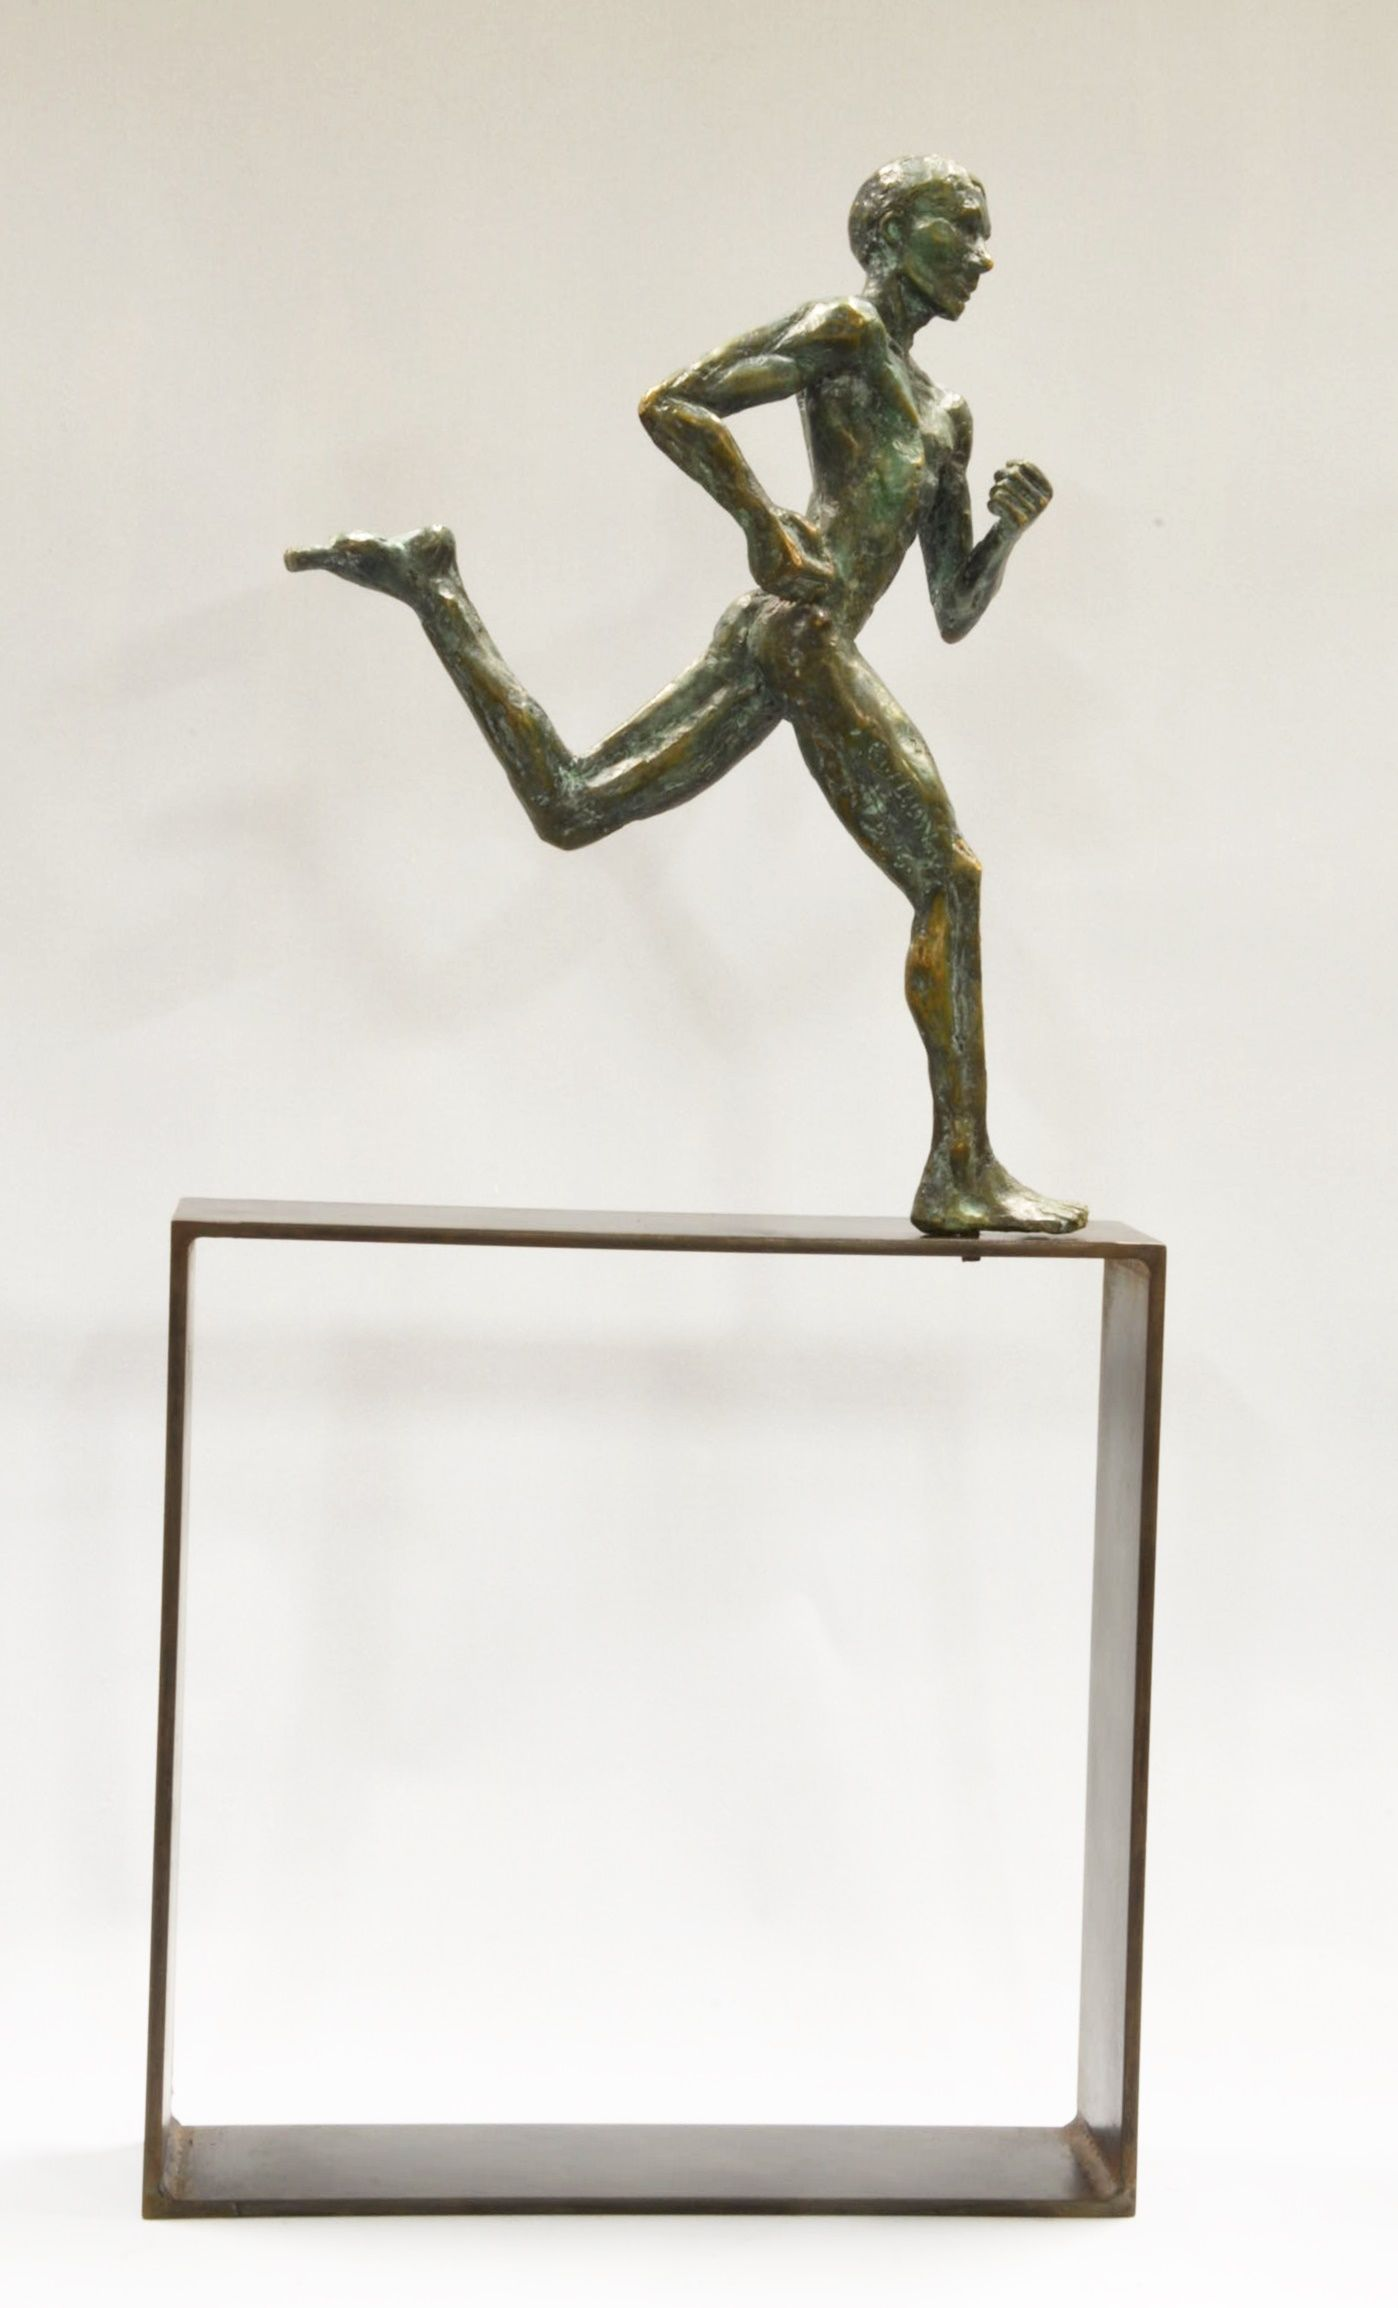 Coureur marathon,Yann Guillon,Sculpture, detail 4